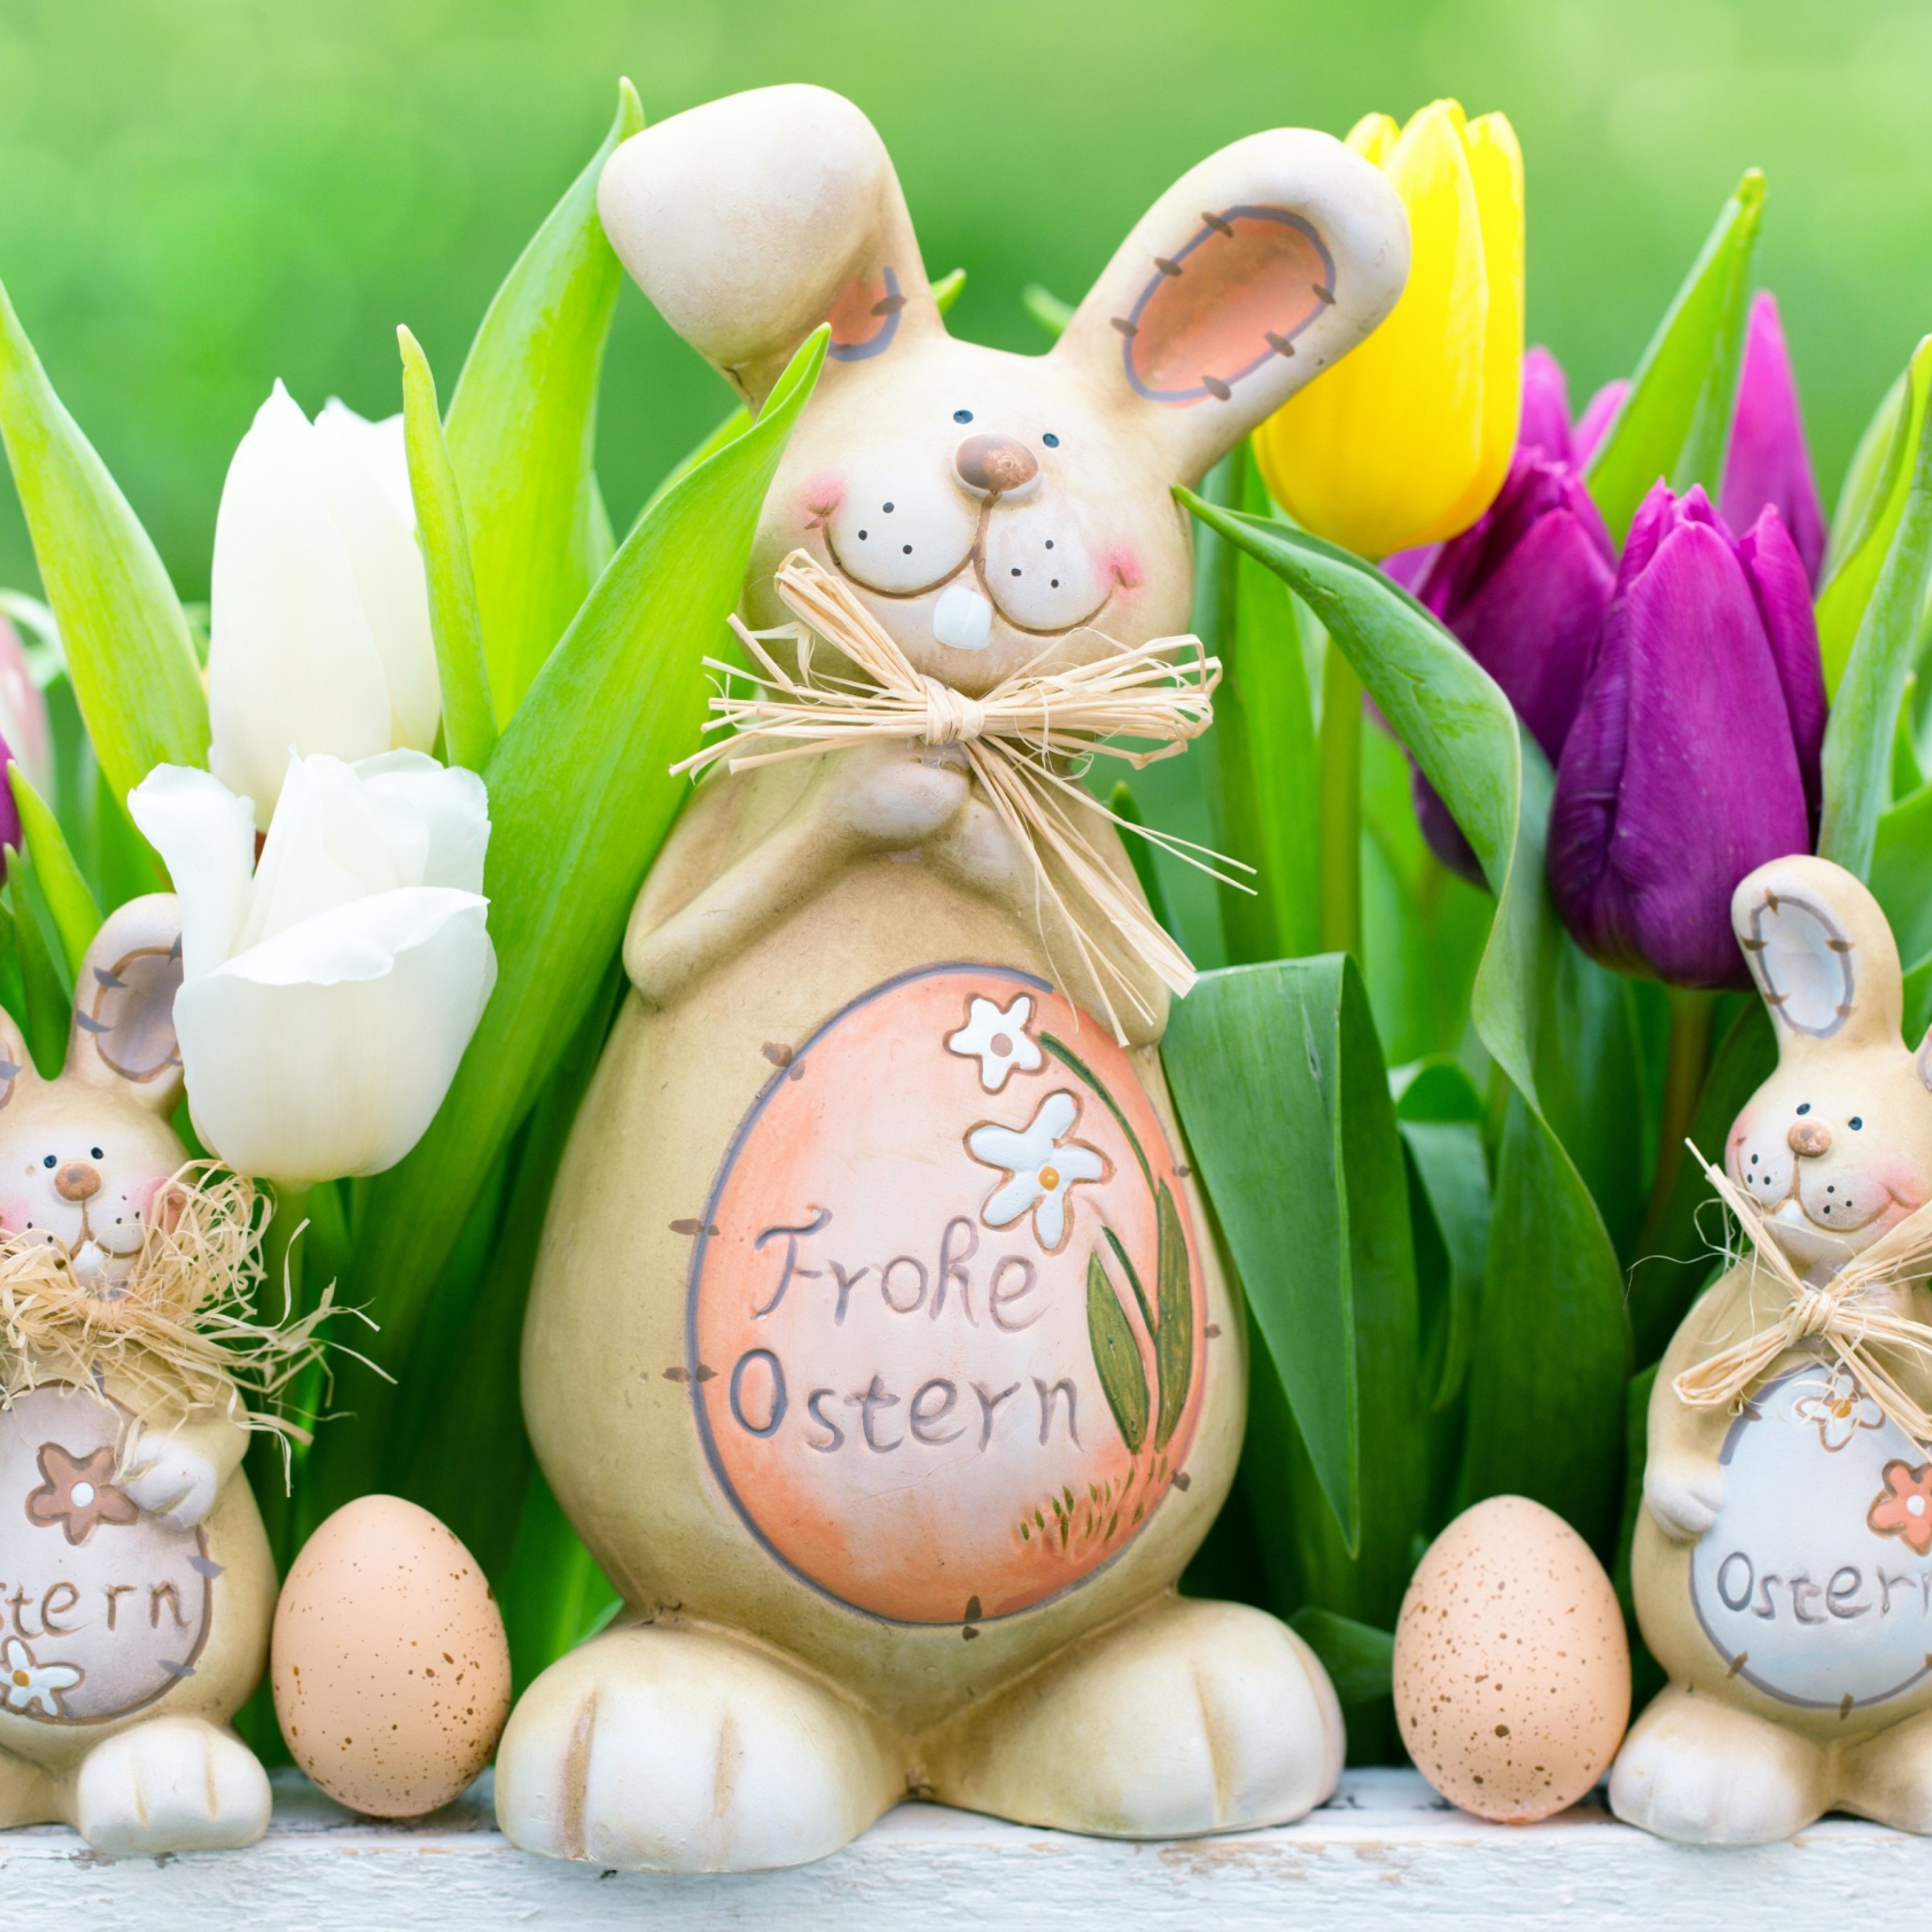 frohe ostern! - HD2048×2048